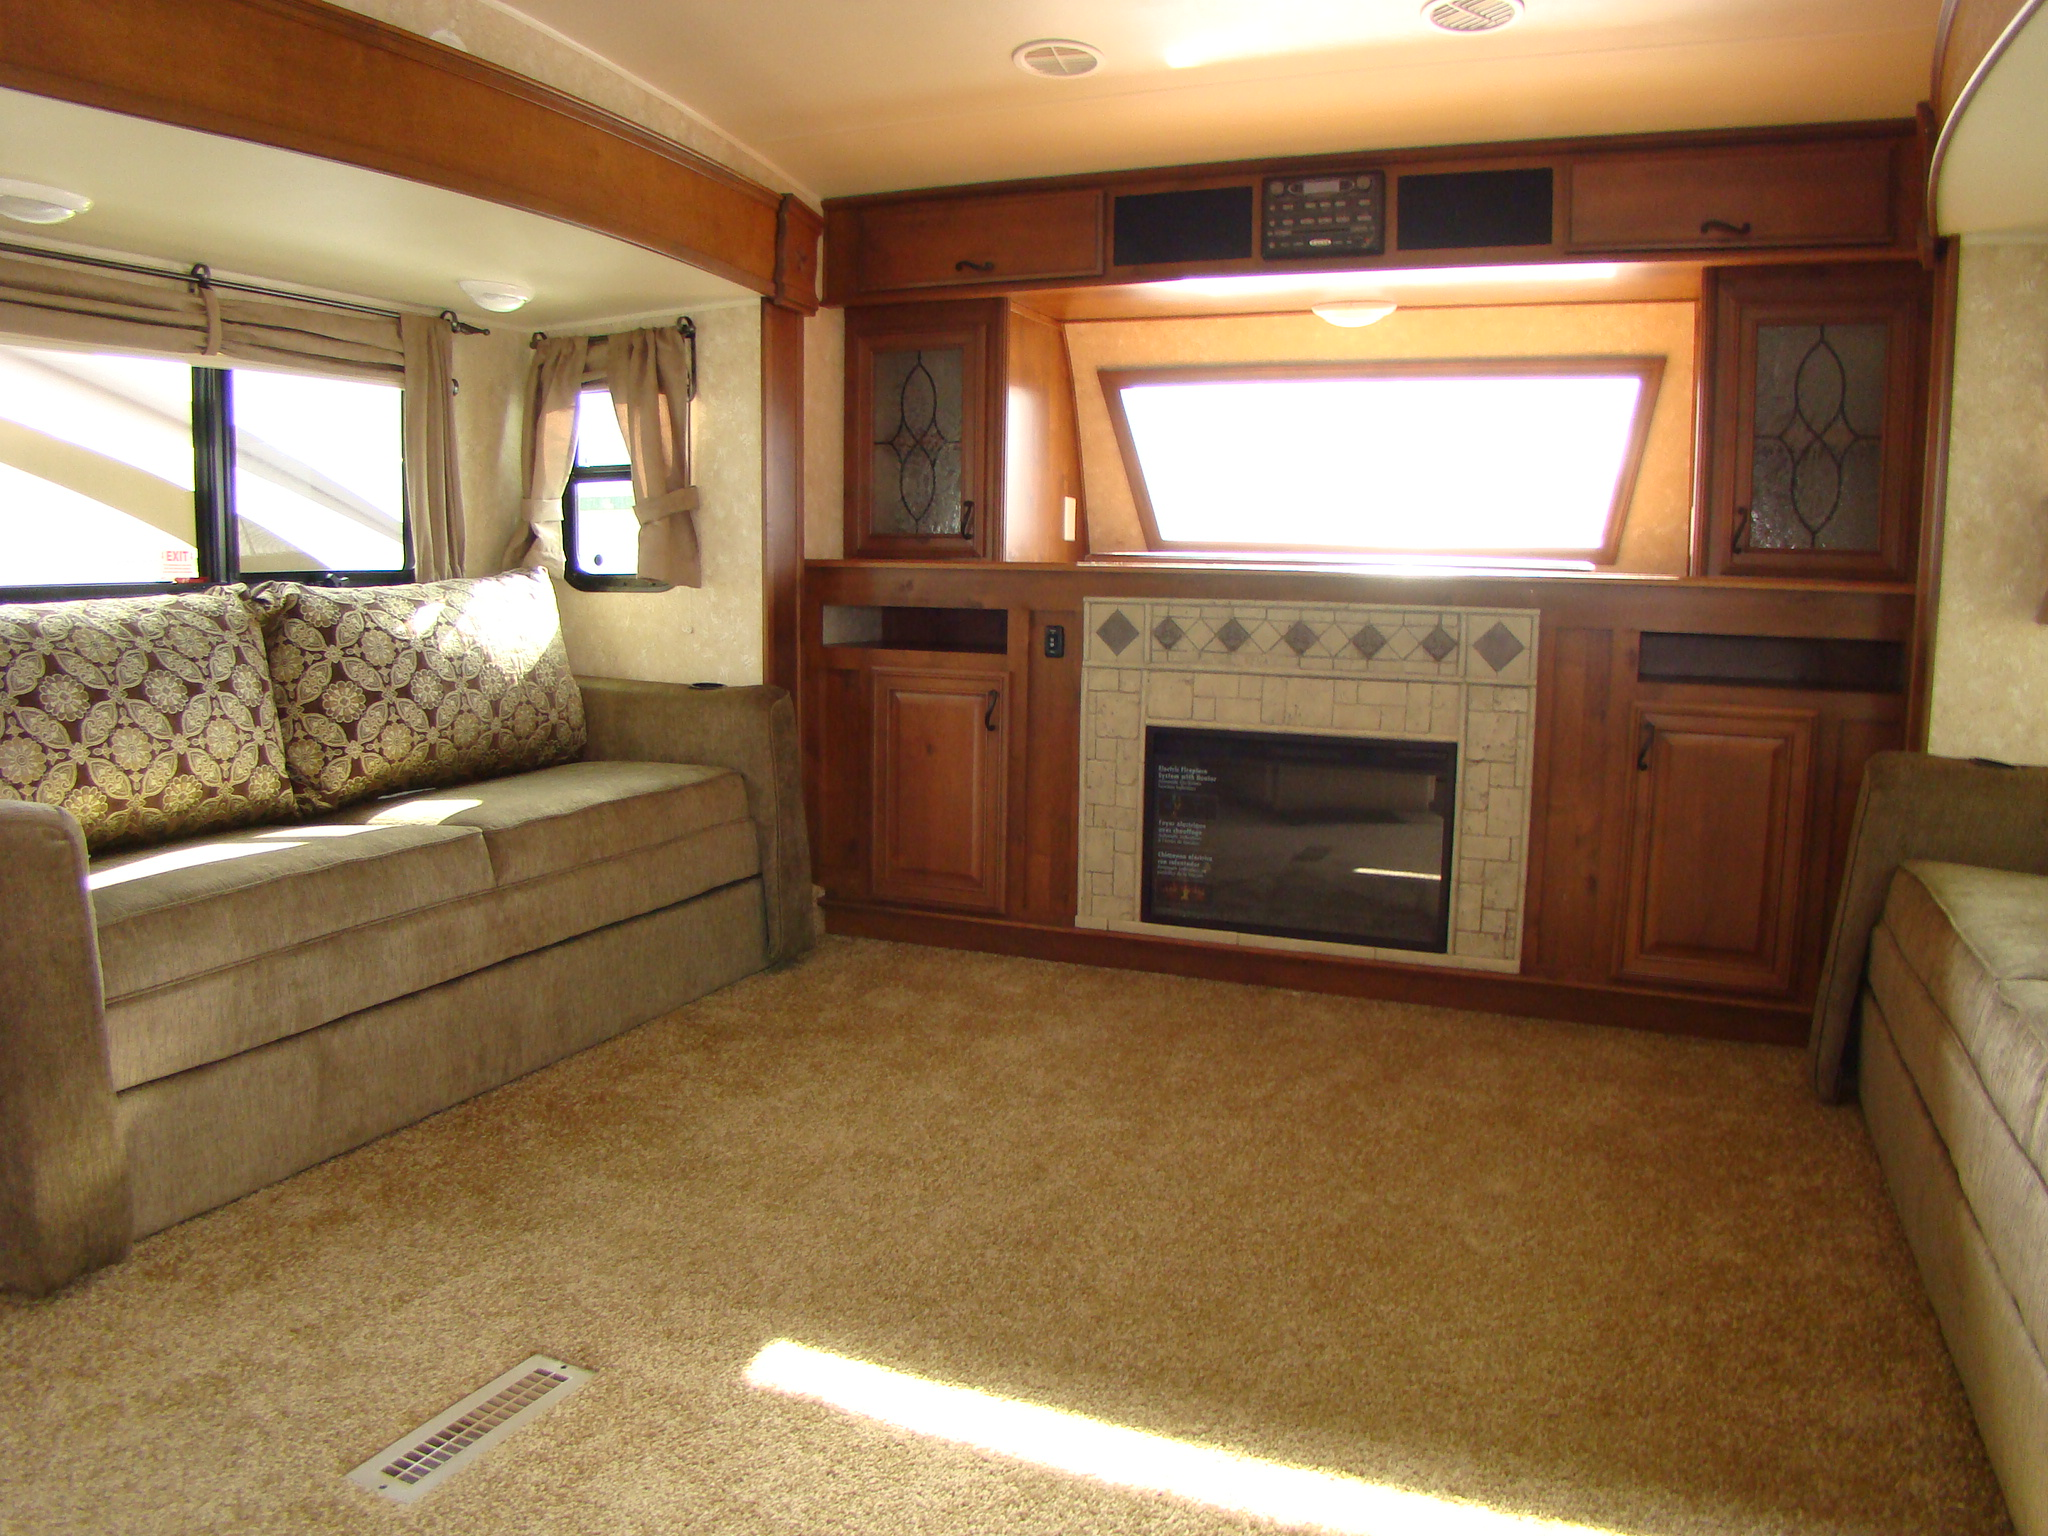 5th wheel rv front living room 5th wheel camper rving is easy at lerch rv 25052